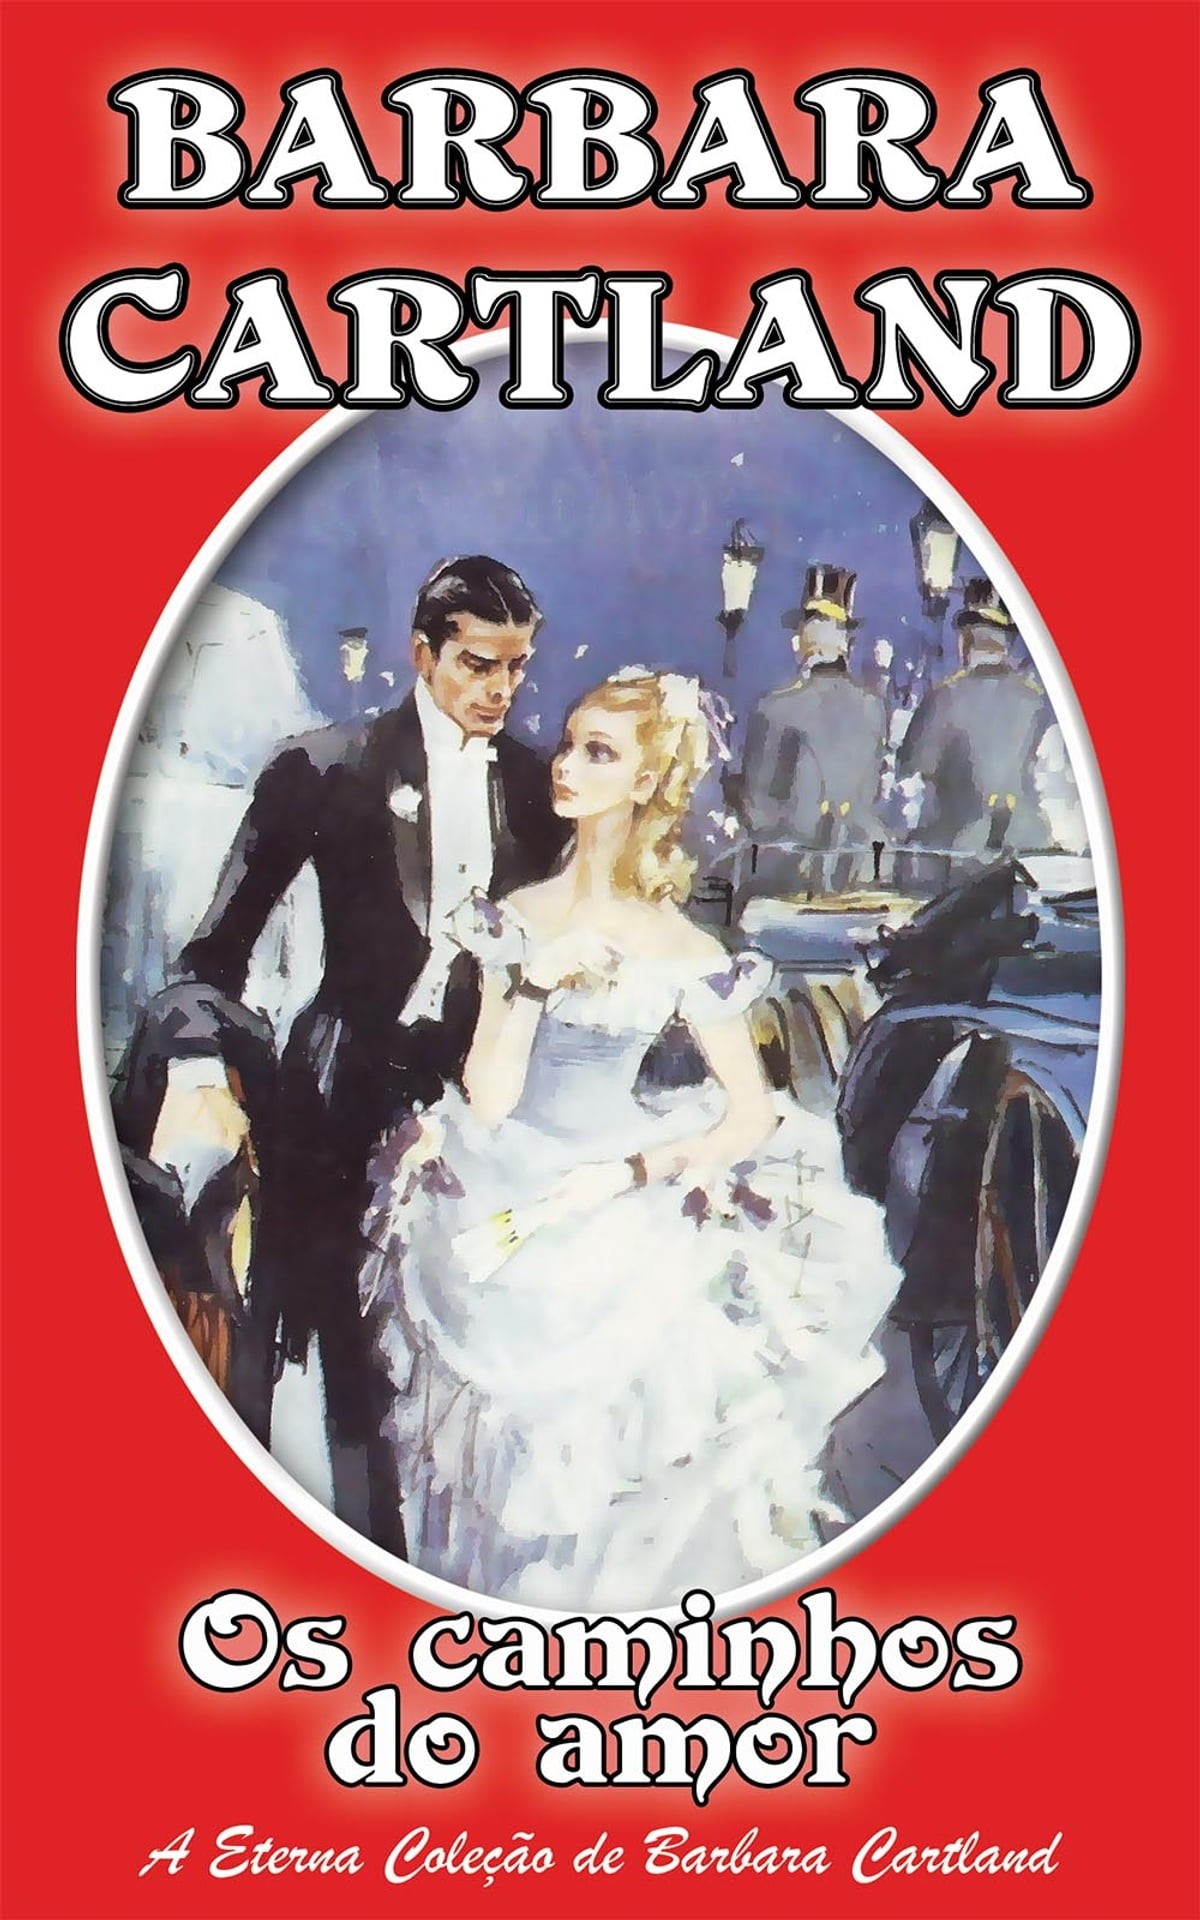 barbara cartland books pdf free